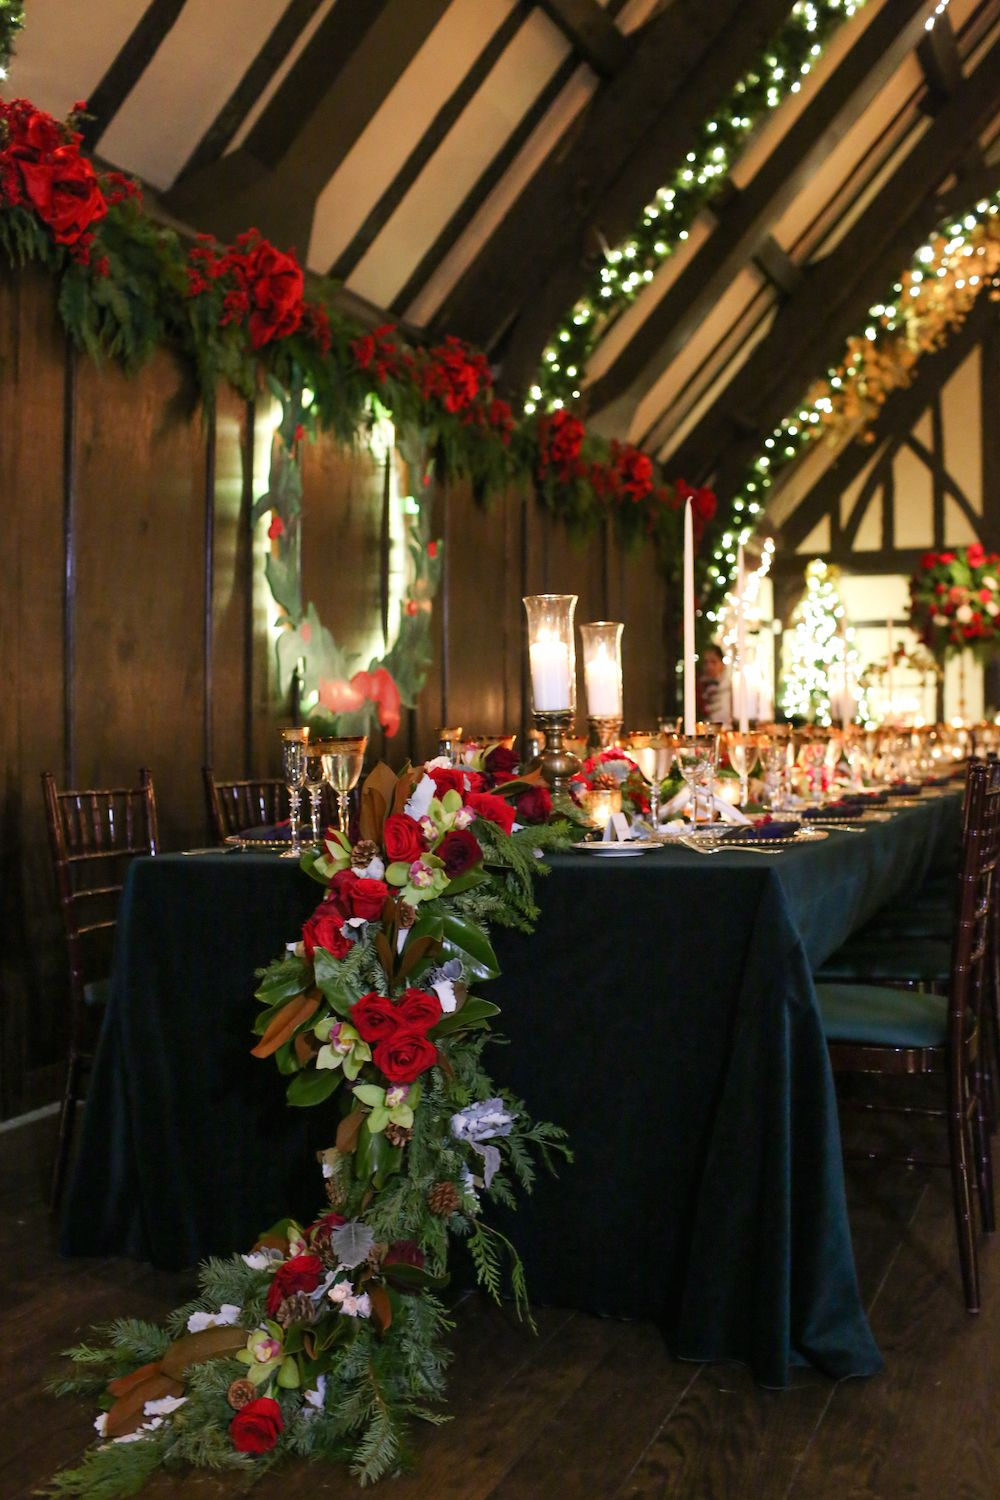 Christmas theme wedding with festive red green dcor in illinois christmas theme wedding with festive red green dcor in illinois junglespirit Choice Image